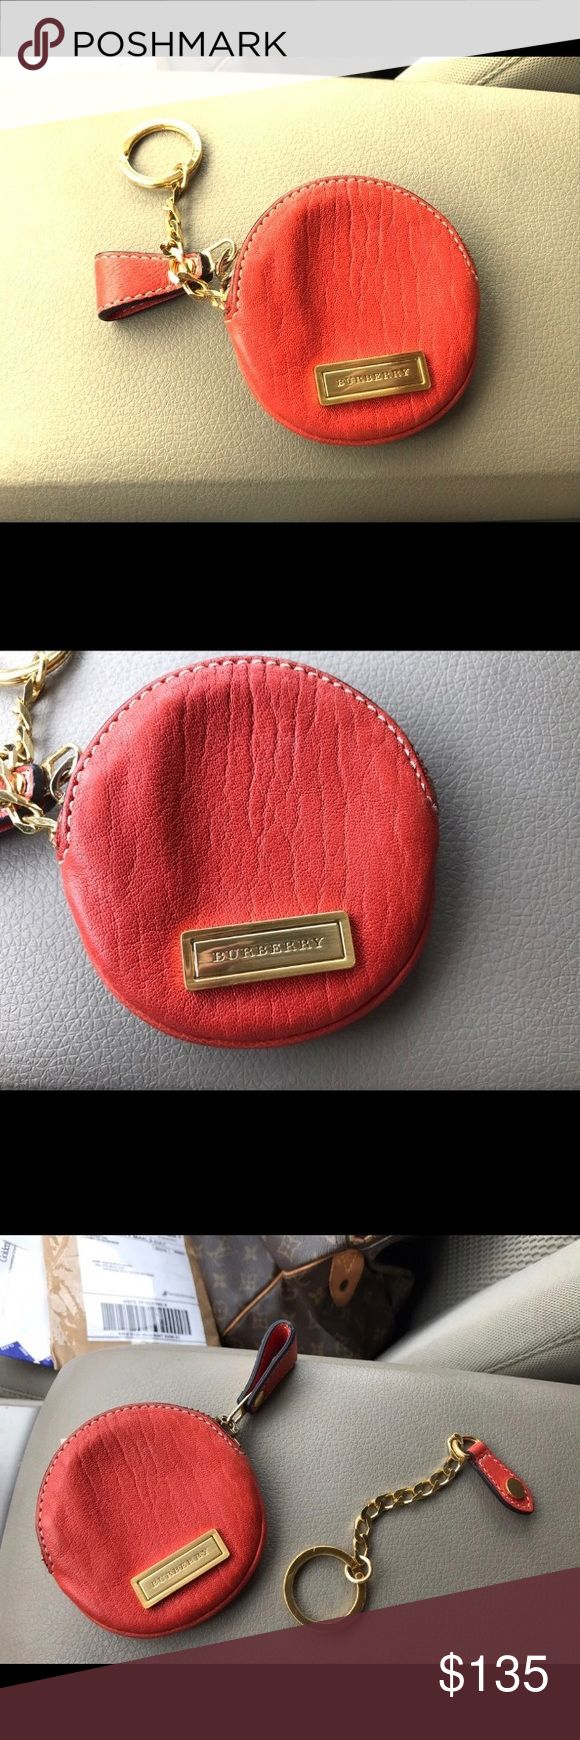 Authentic Burberry round change purse / keychain Authentic Burberry round coin purse in burnt orange - lambskin with gold hardware. Keychain is detachable so this can be used as a coin purse, a key chain a bag charm or just a purse organizer for headphones and such. Serial number pics included. Used but still plenty of life - no significant damage or wear - see photos for current condition. Message for further details photos or offers. Burberry Accessories Key & Card Holders